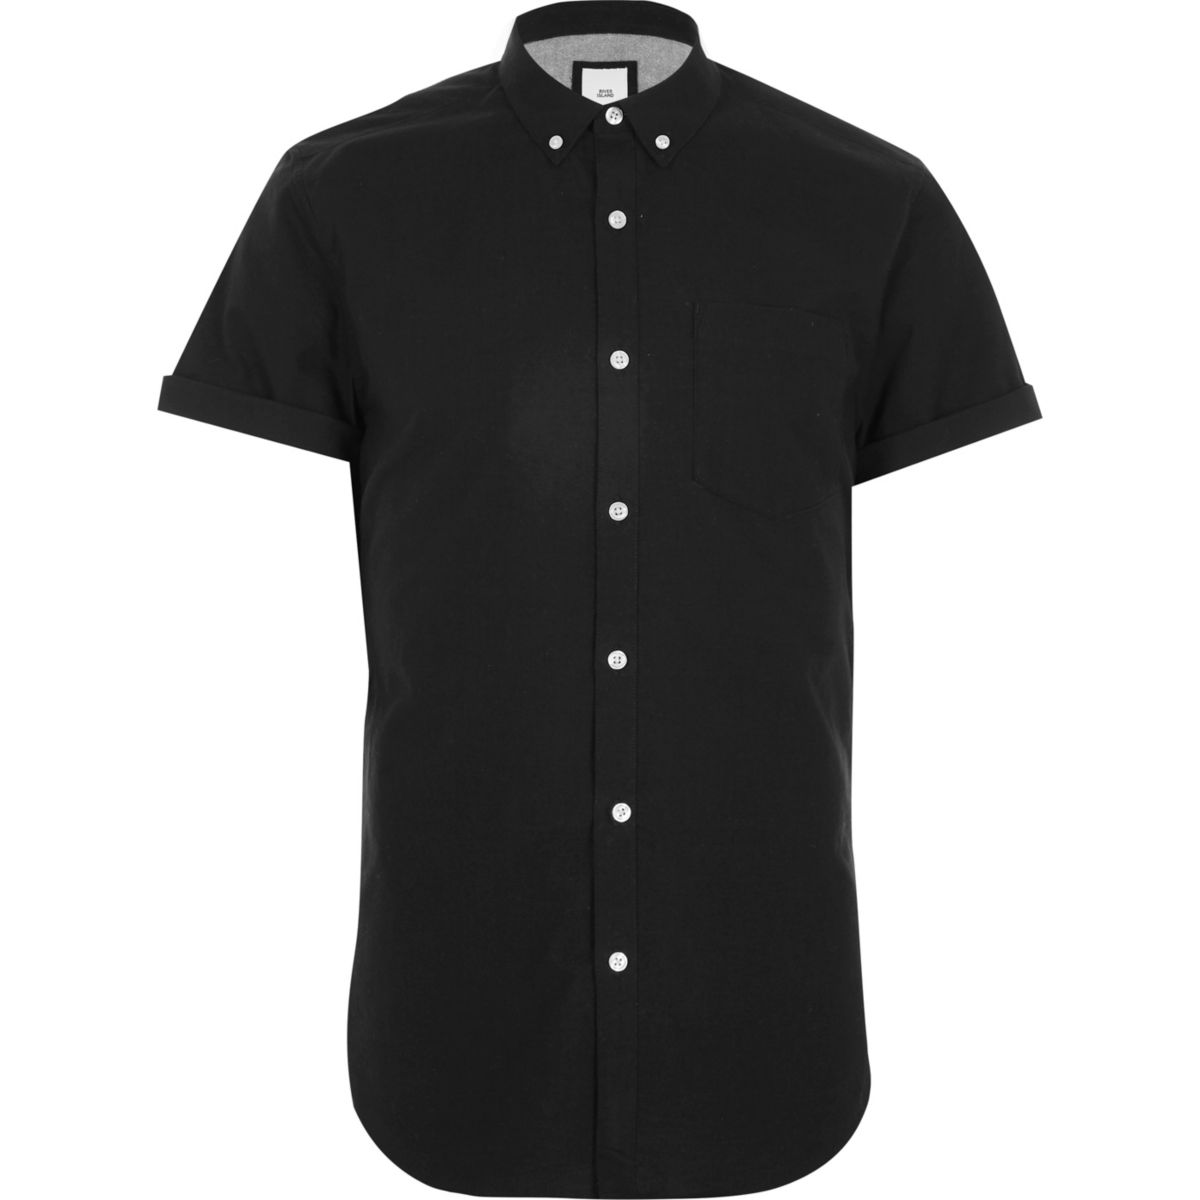 Black short sleeve slim fit oxford shirt shirts sale men for Mens short sleeve oxford shirt